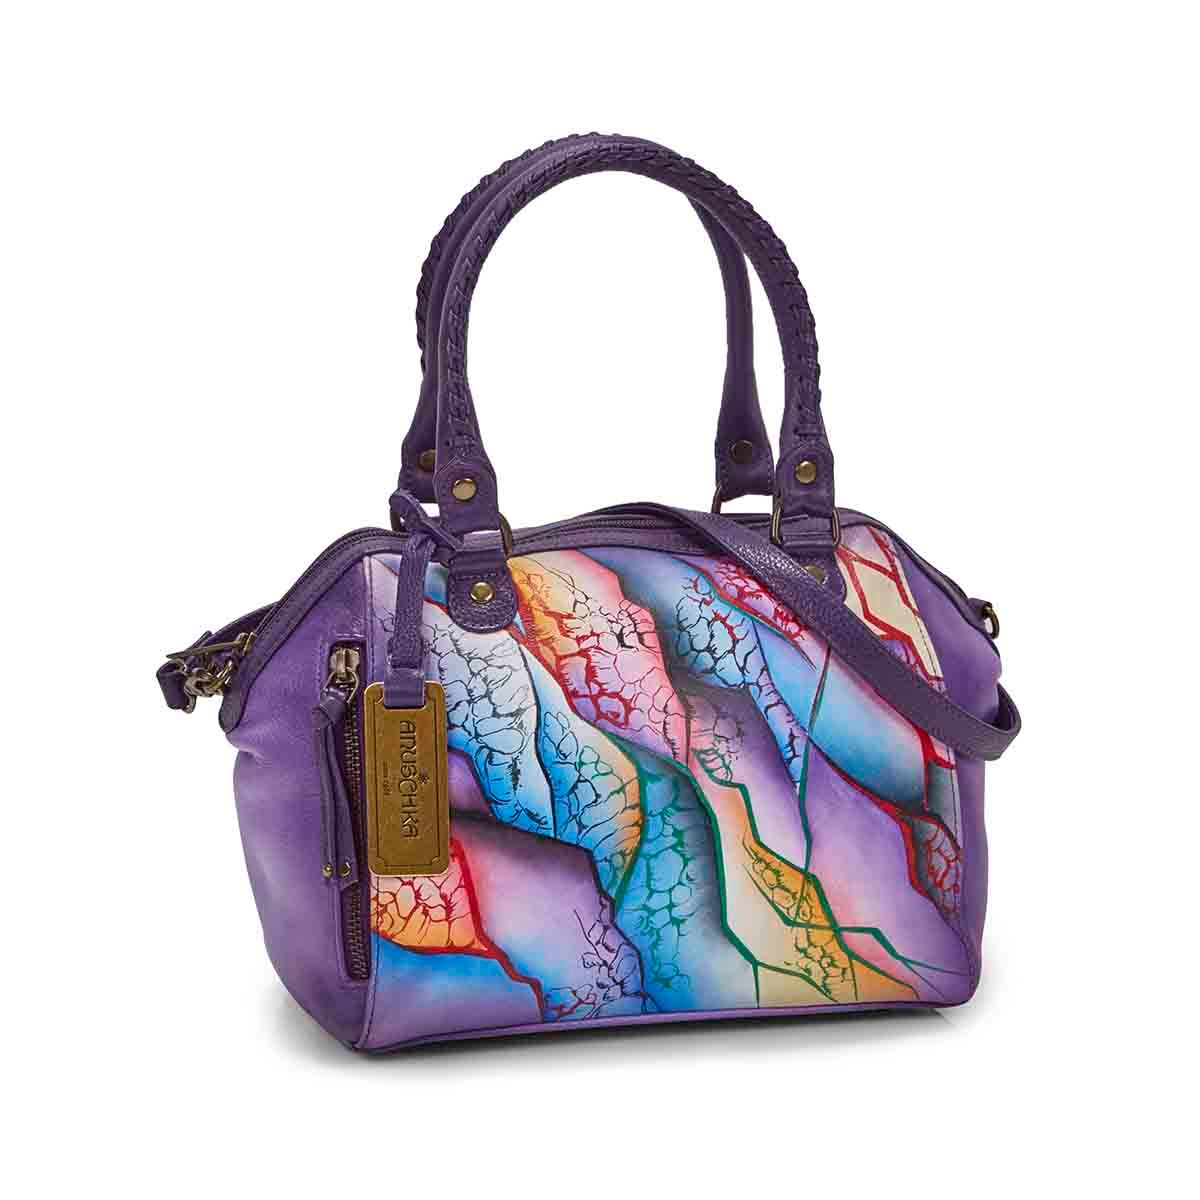 Painted lthr Cosmic Quest conv. tote